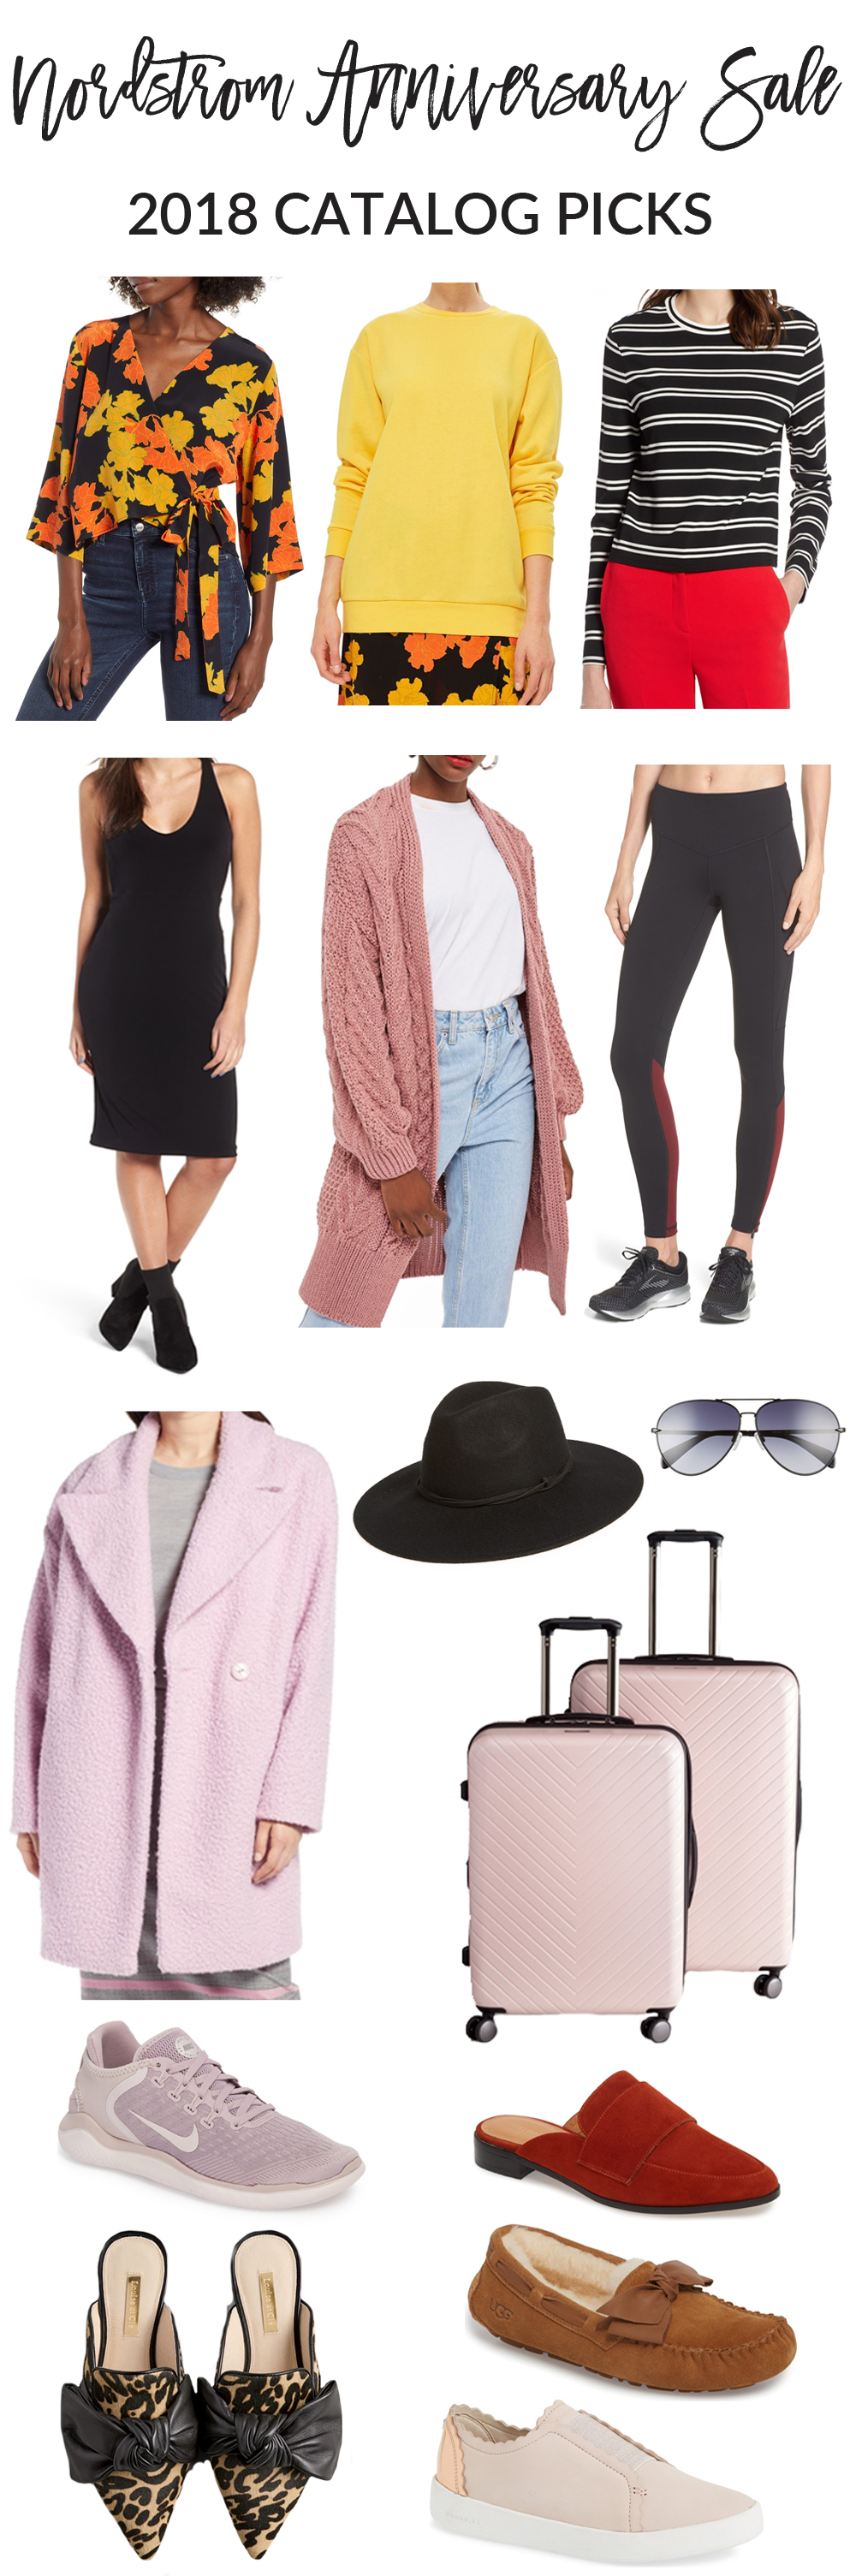 8e9981b842 My Top Picks From The 2018 Nordstrom Anniversary Sale Catalog